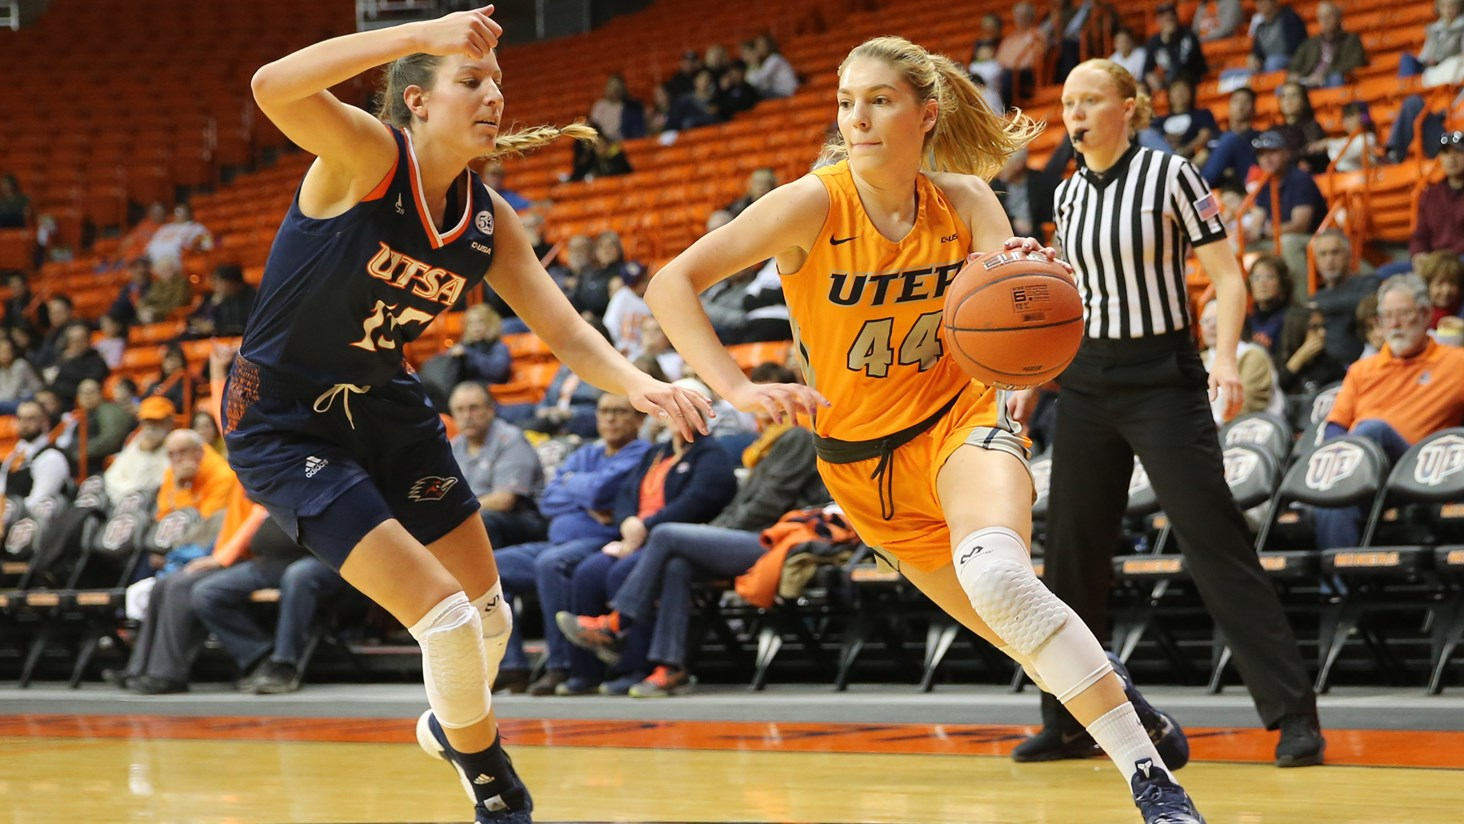 ee4141bf2b7 UTEP Women s Basketball Notes   Game 28   At UAB - The University of ...